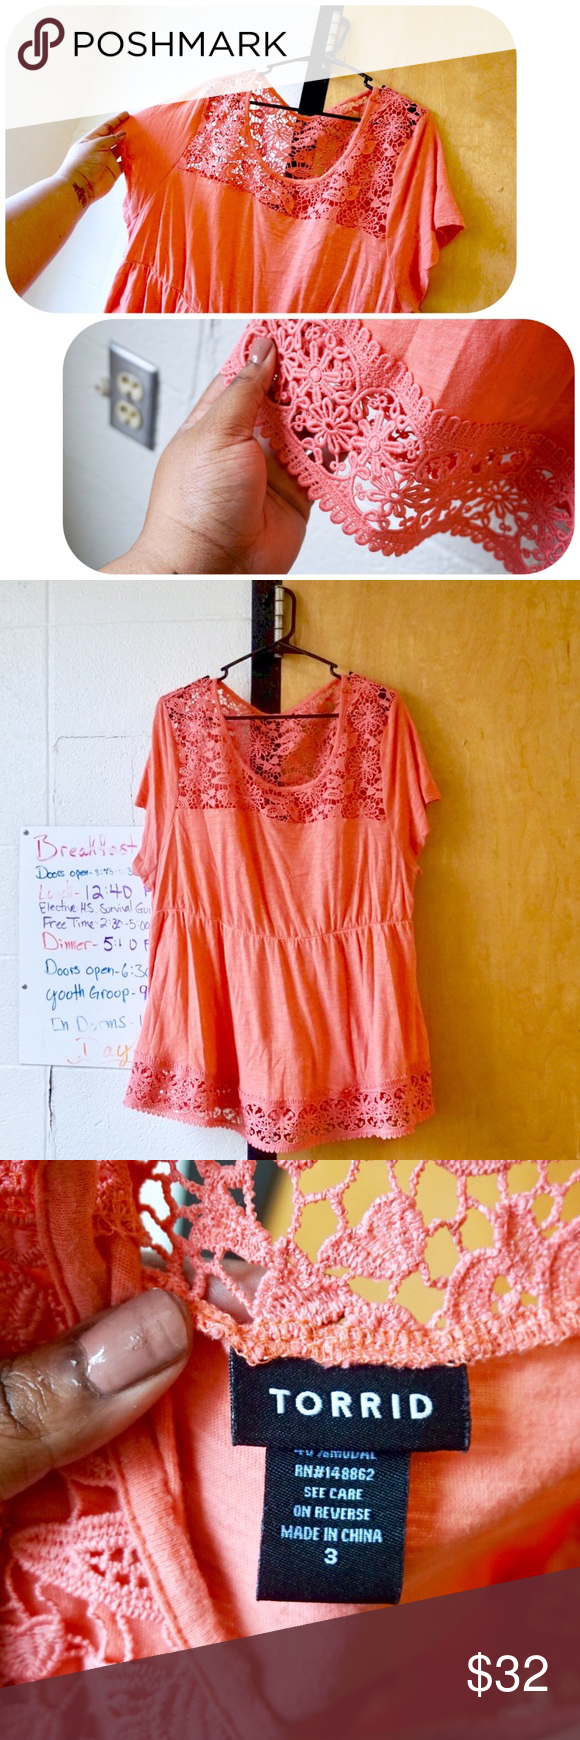 Crochet Babydoll Top - TORRID Salmon-colored empire neckline top with pretty lace crochet detailing at the collar and the hemline. Cinches in under the bust slightly for a flattering fit. Worn once, size 3X. Make an offer, I don't bite 💖 torrid Tops Blouses